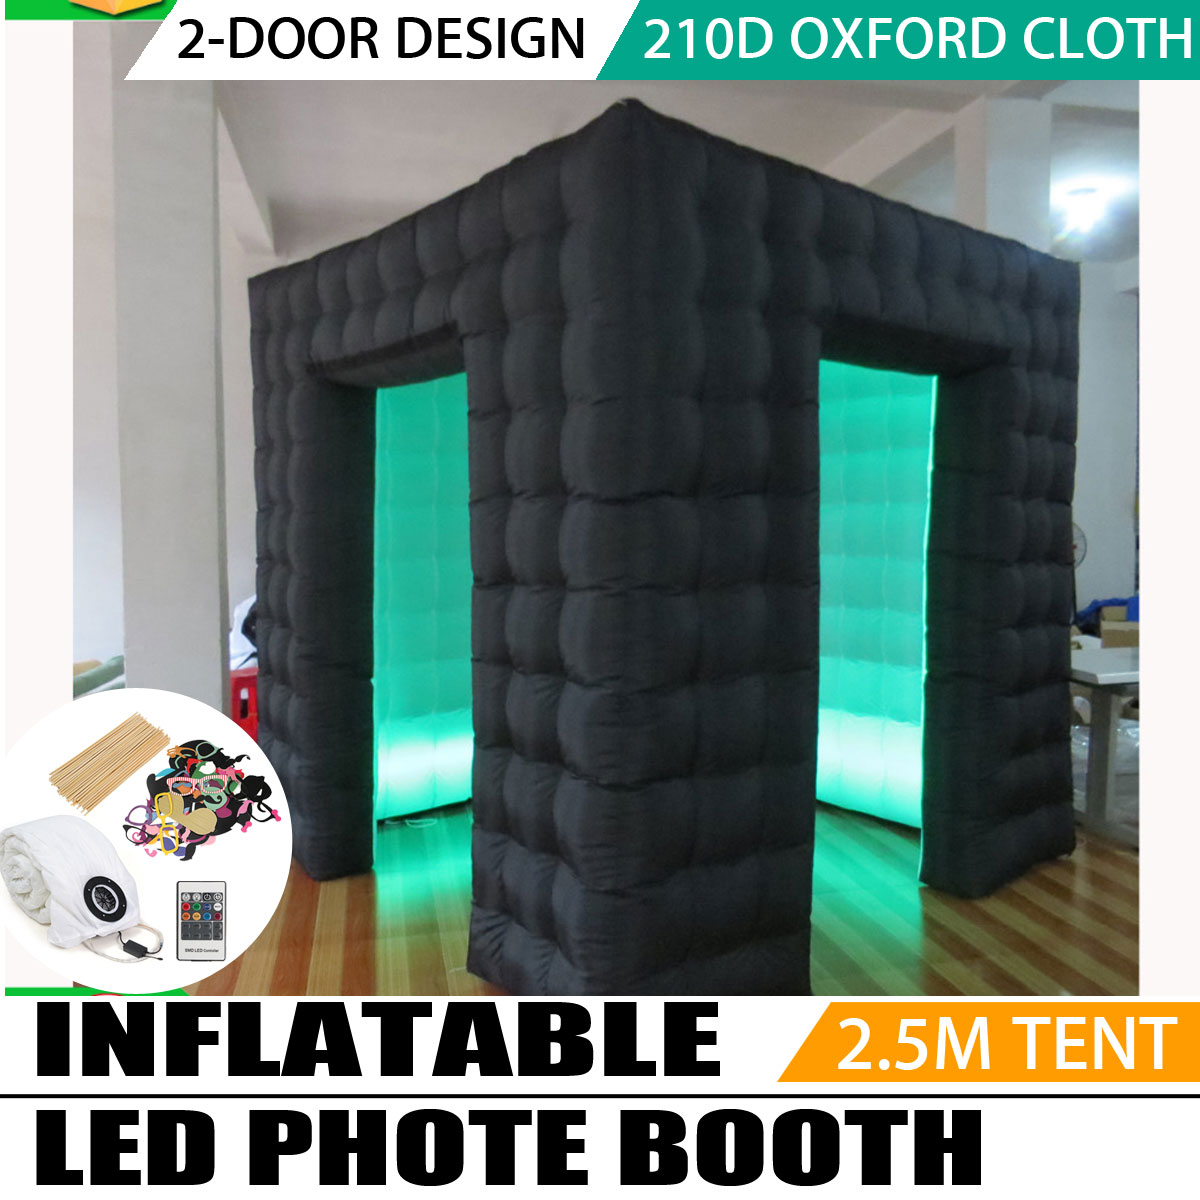 2.5*2.5*2.5 m Portable Gonflable Photo Cabine Gonflable Cube Tente Led Gonflable Photo Booth pour la Fête De Mariage